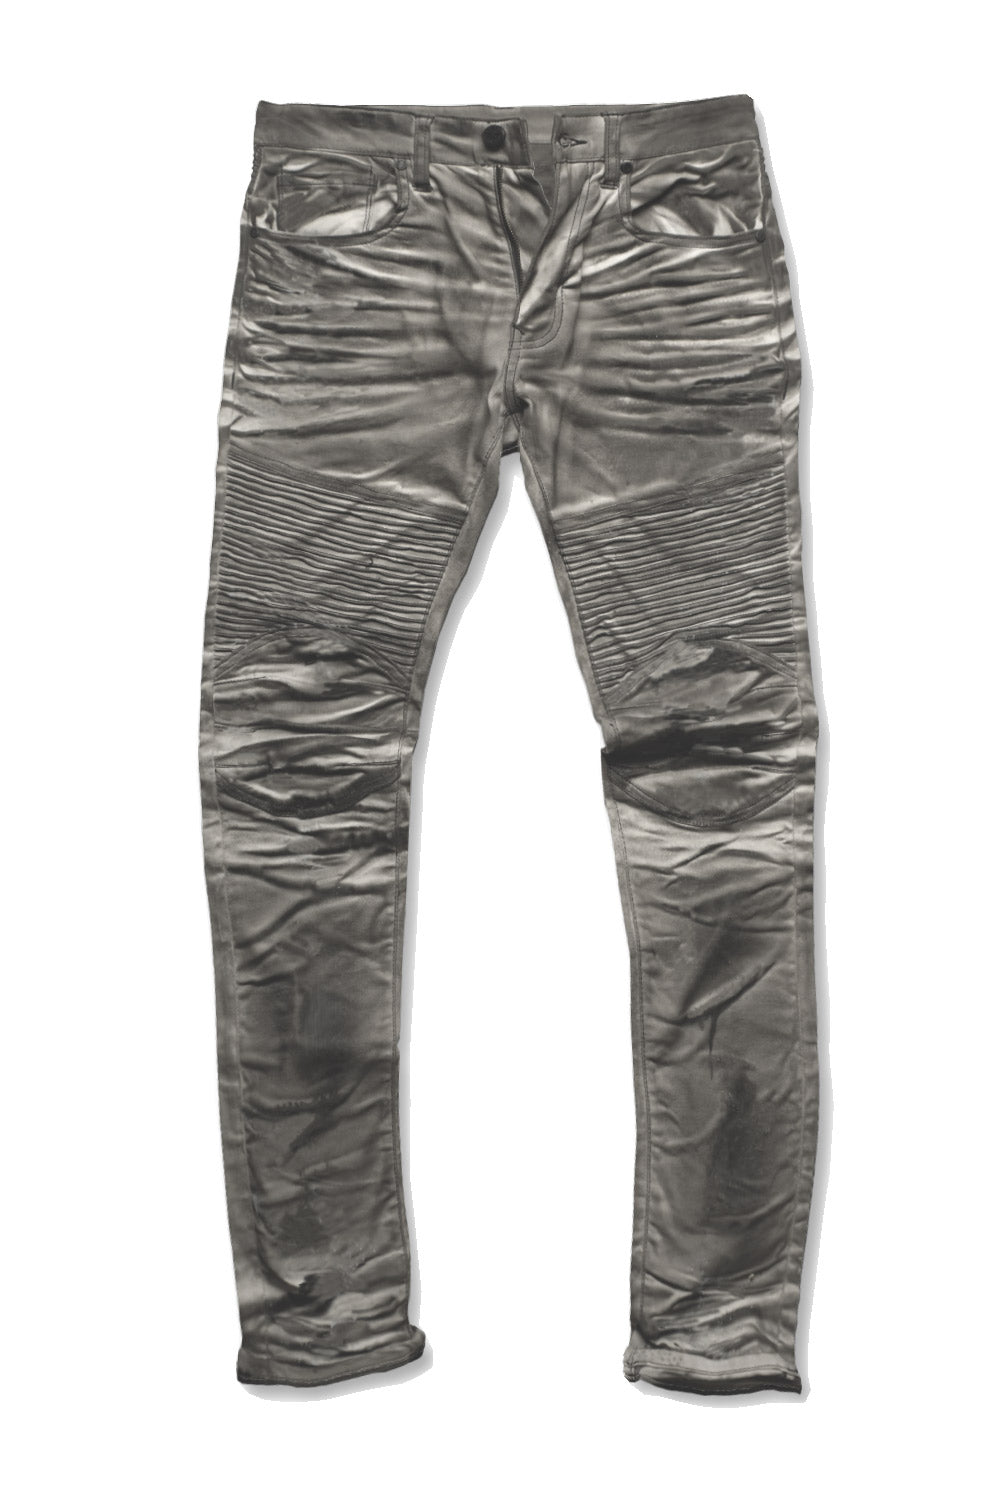 Jordan Craig - Aaron - Vandal Moto Denim (Light Grey)